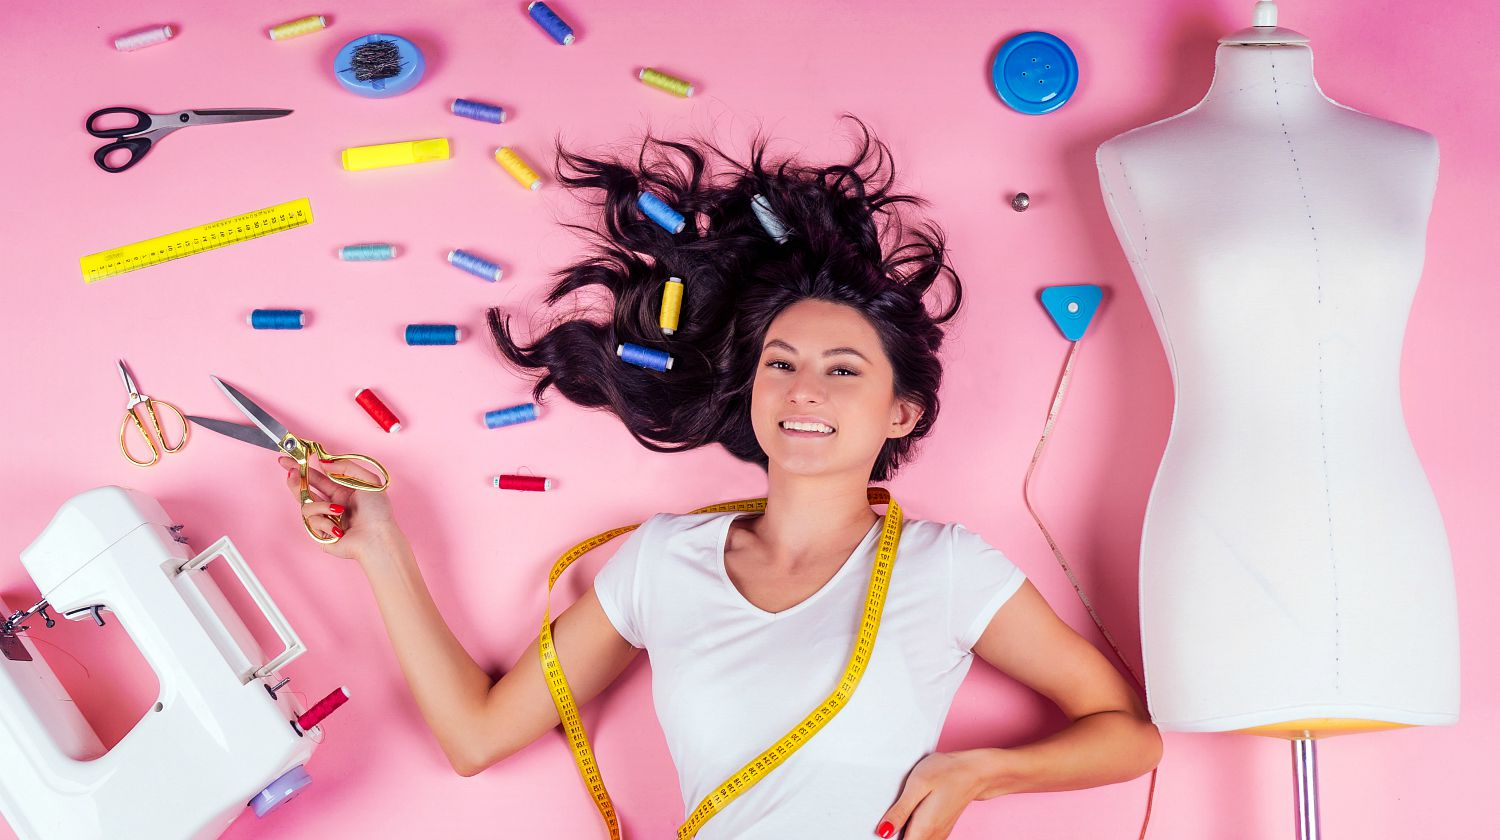 Featured | Young woman designer,sewing machine and maniken in studio pink background | More Sewing Hacks To Make Your Life Easier